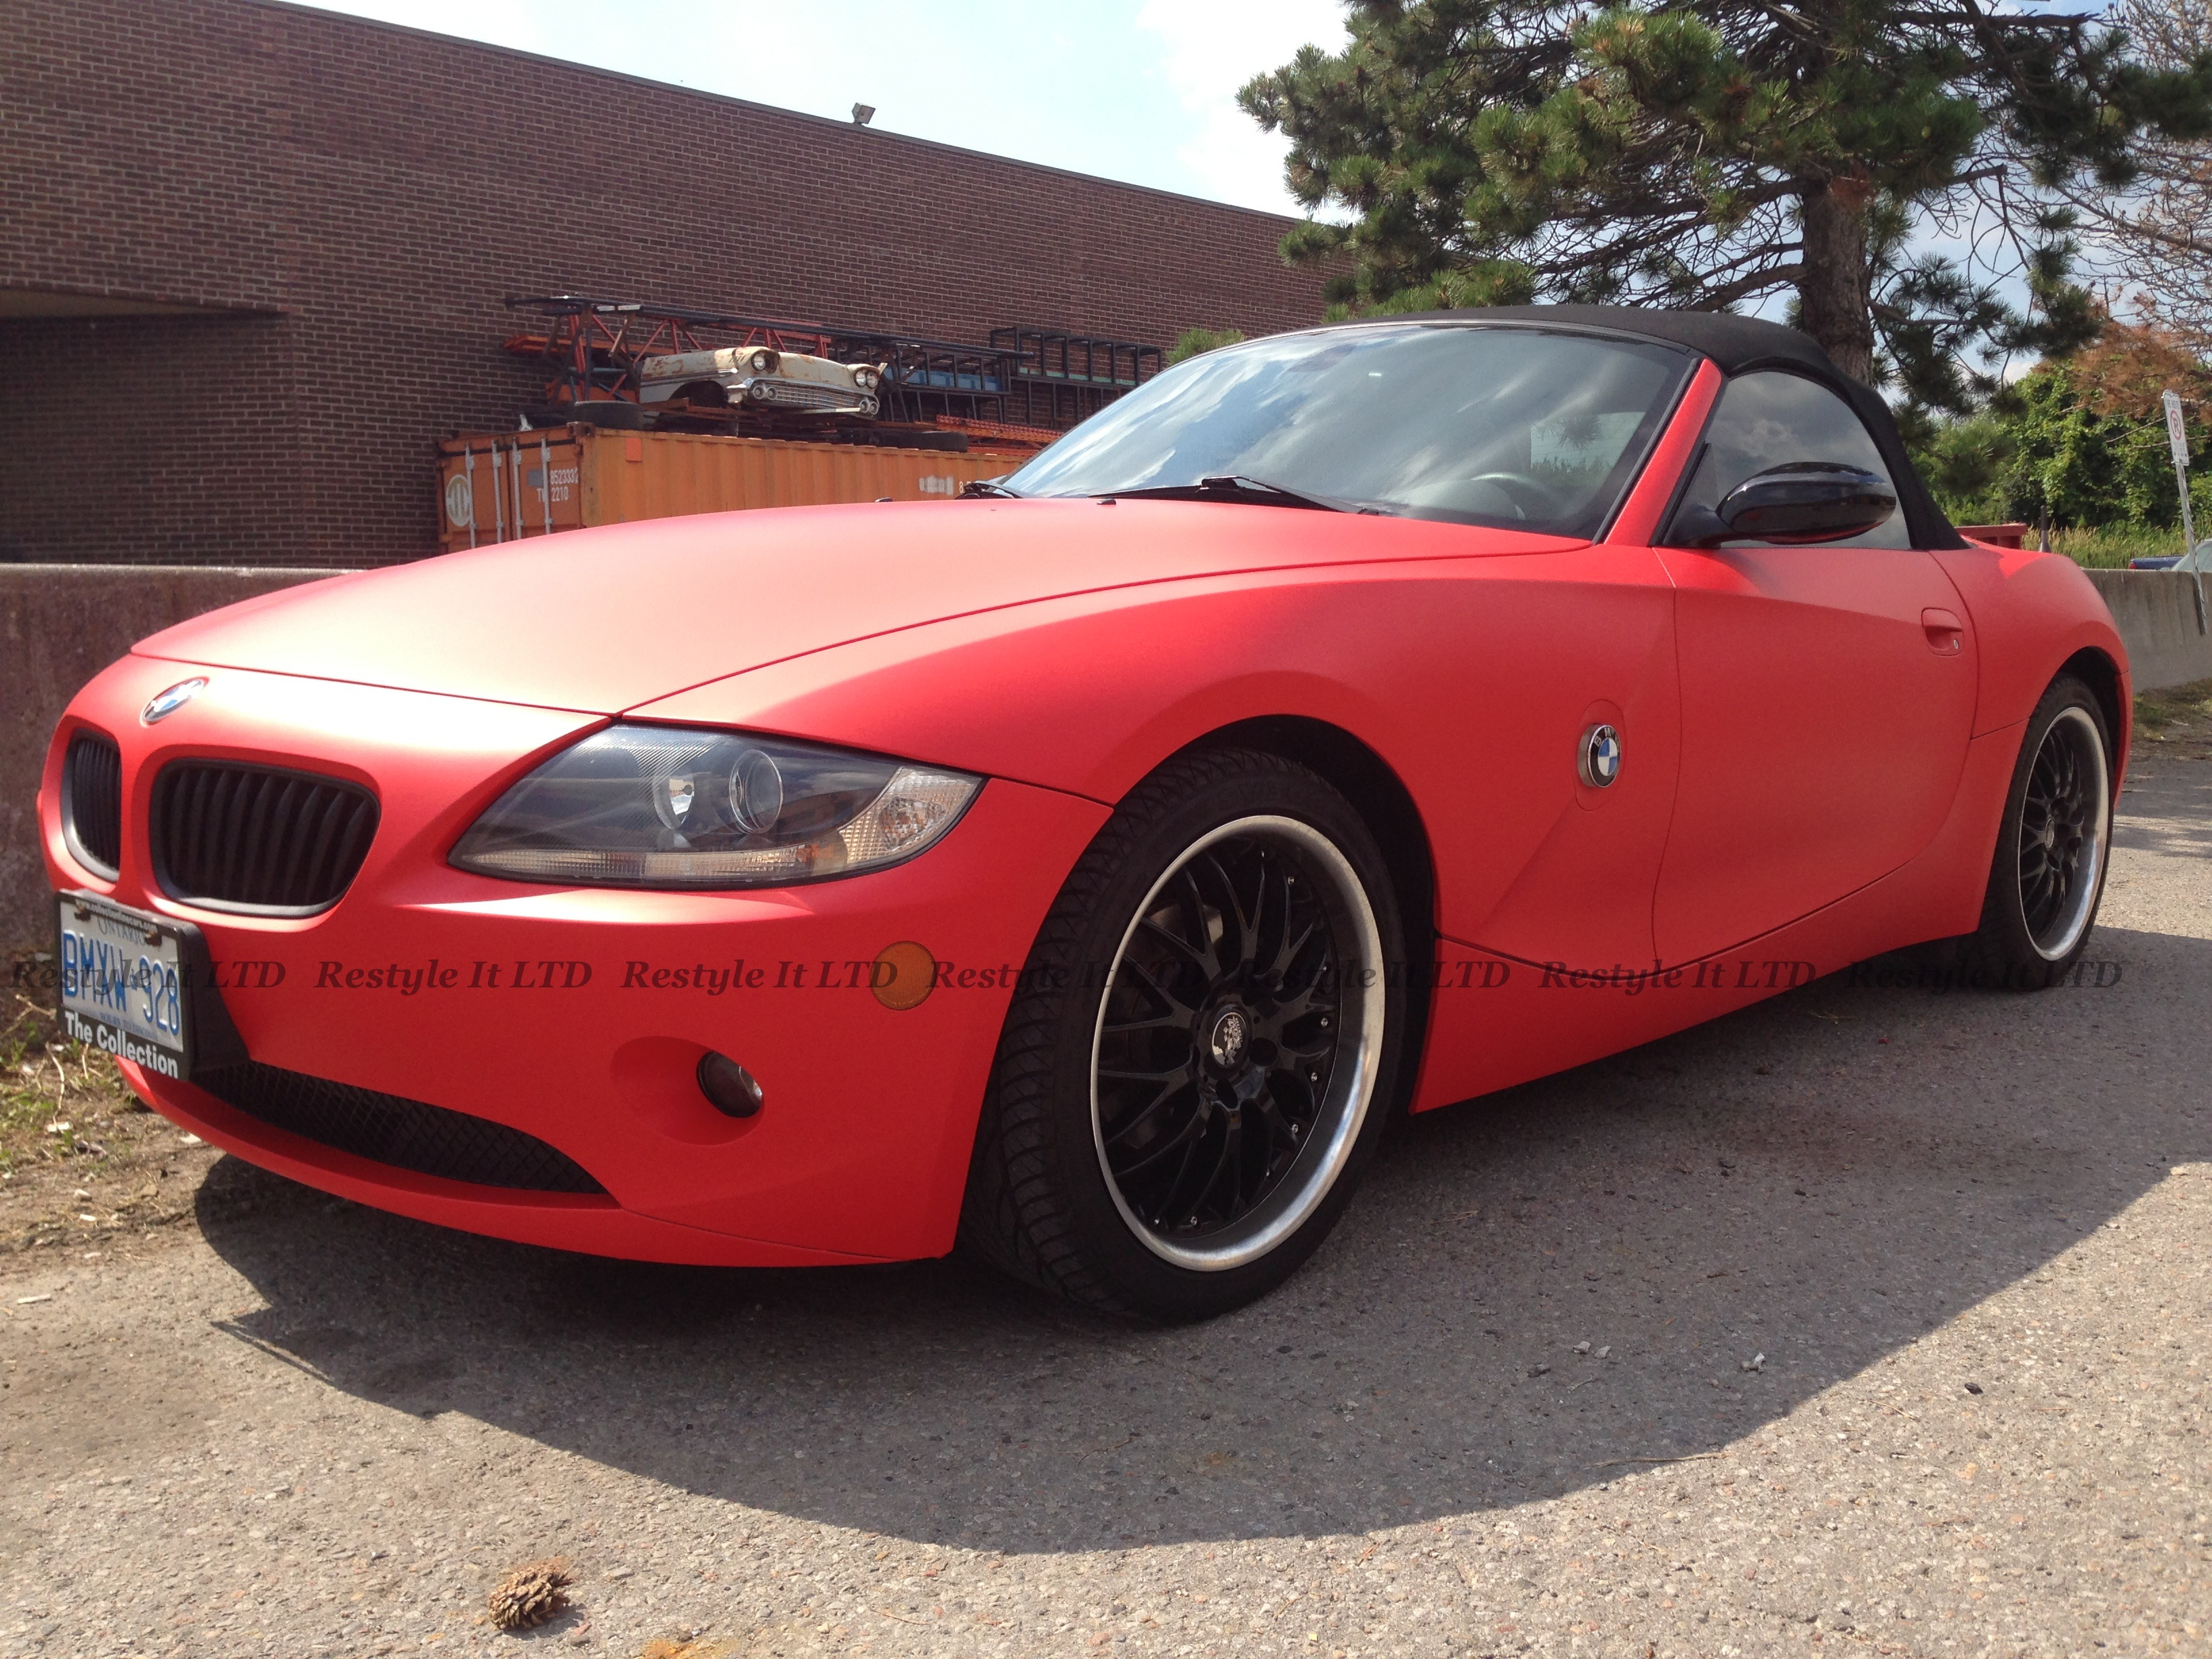 Matte Red Bmw Z4 Vehicle Customization Shop Vinyl Car Wrap Car Wrap In Toronto Miami